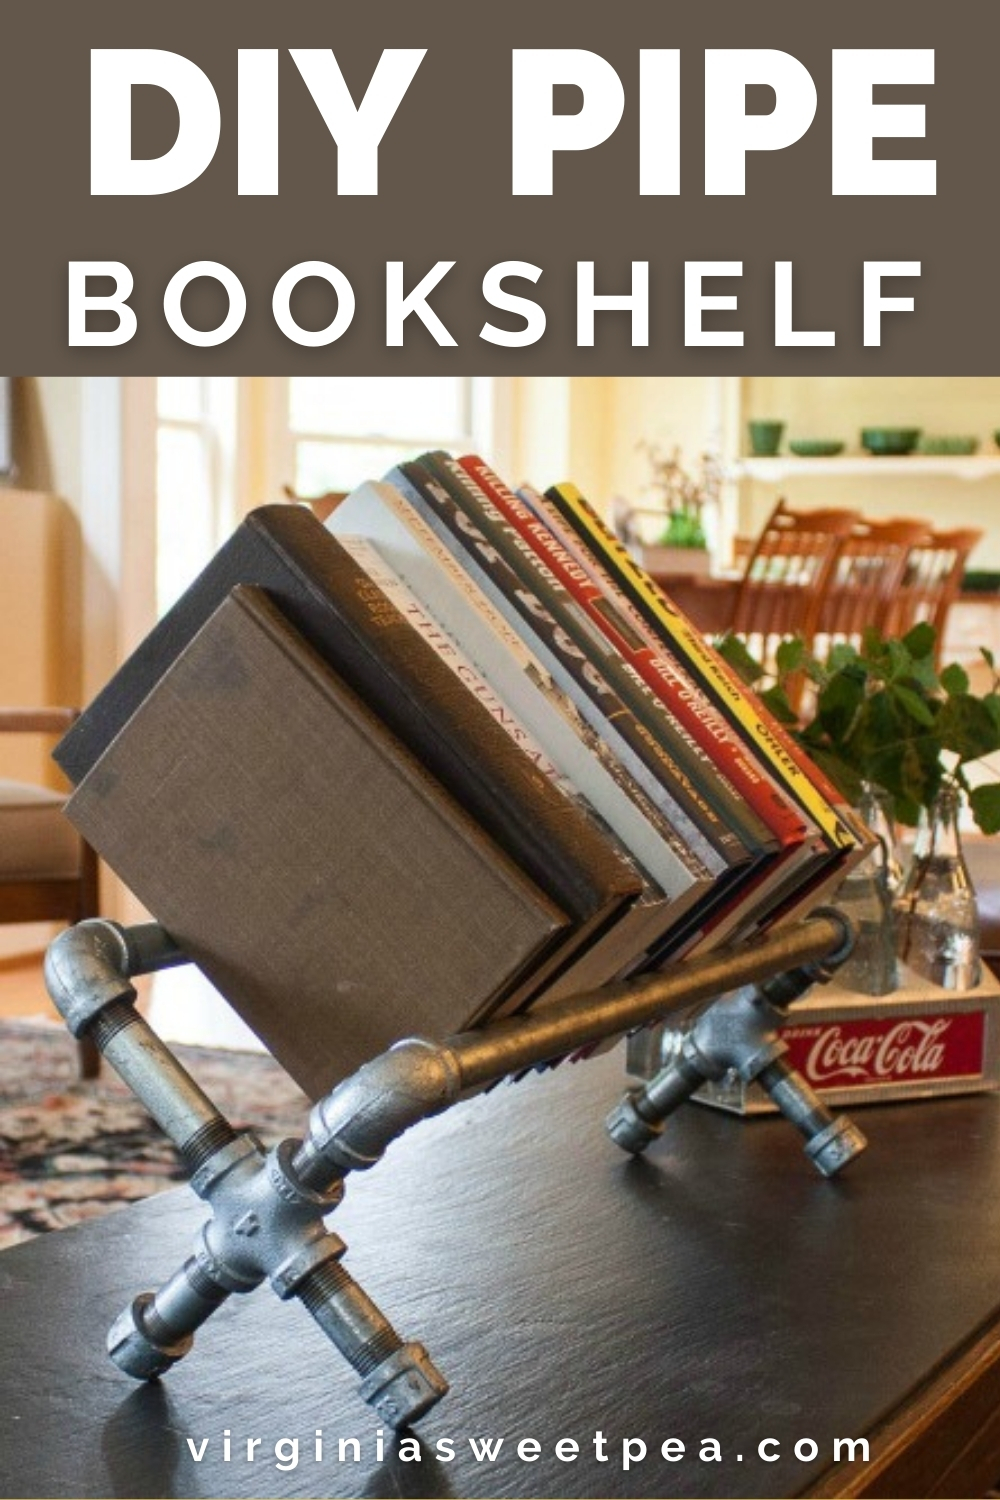 DIY Pipe Bookshelf - Learn how to use pipes and pipe fittings to make a bookshelf. No tools are required to make this project!  #diybookshelf #pipeproject via @spaula